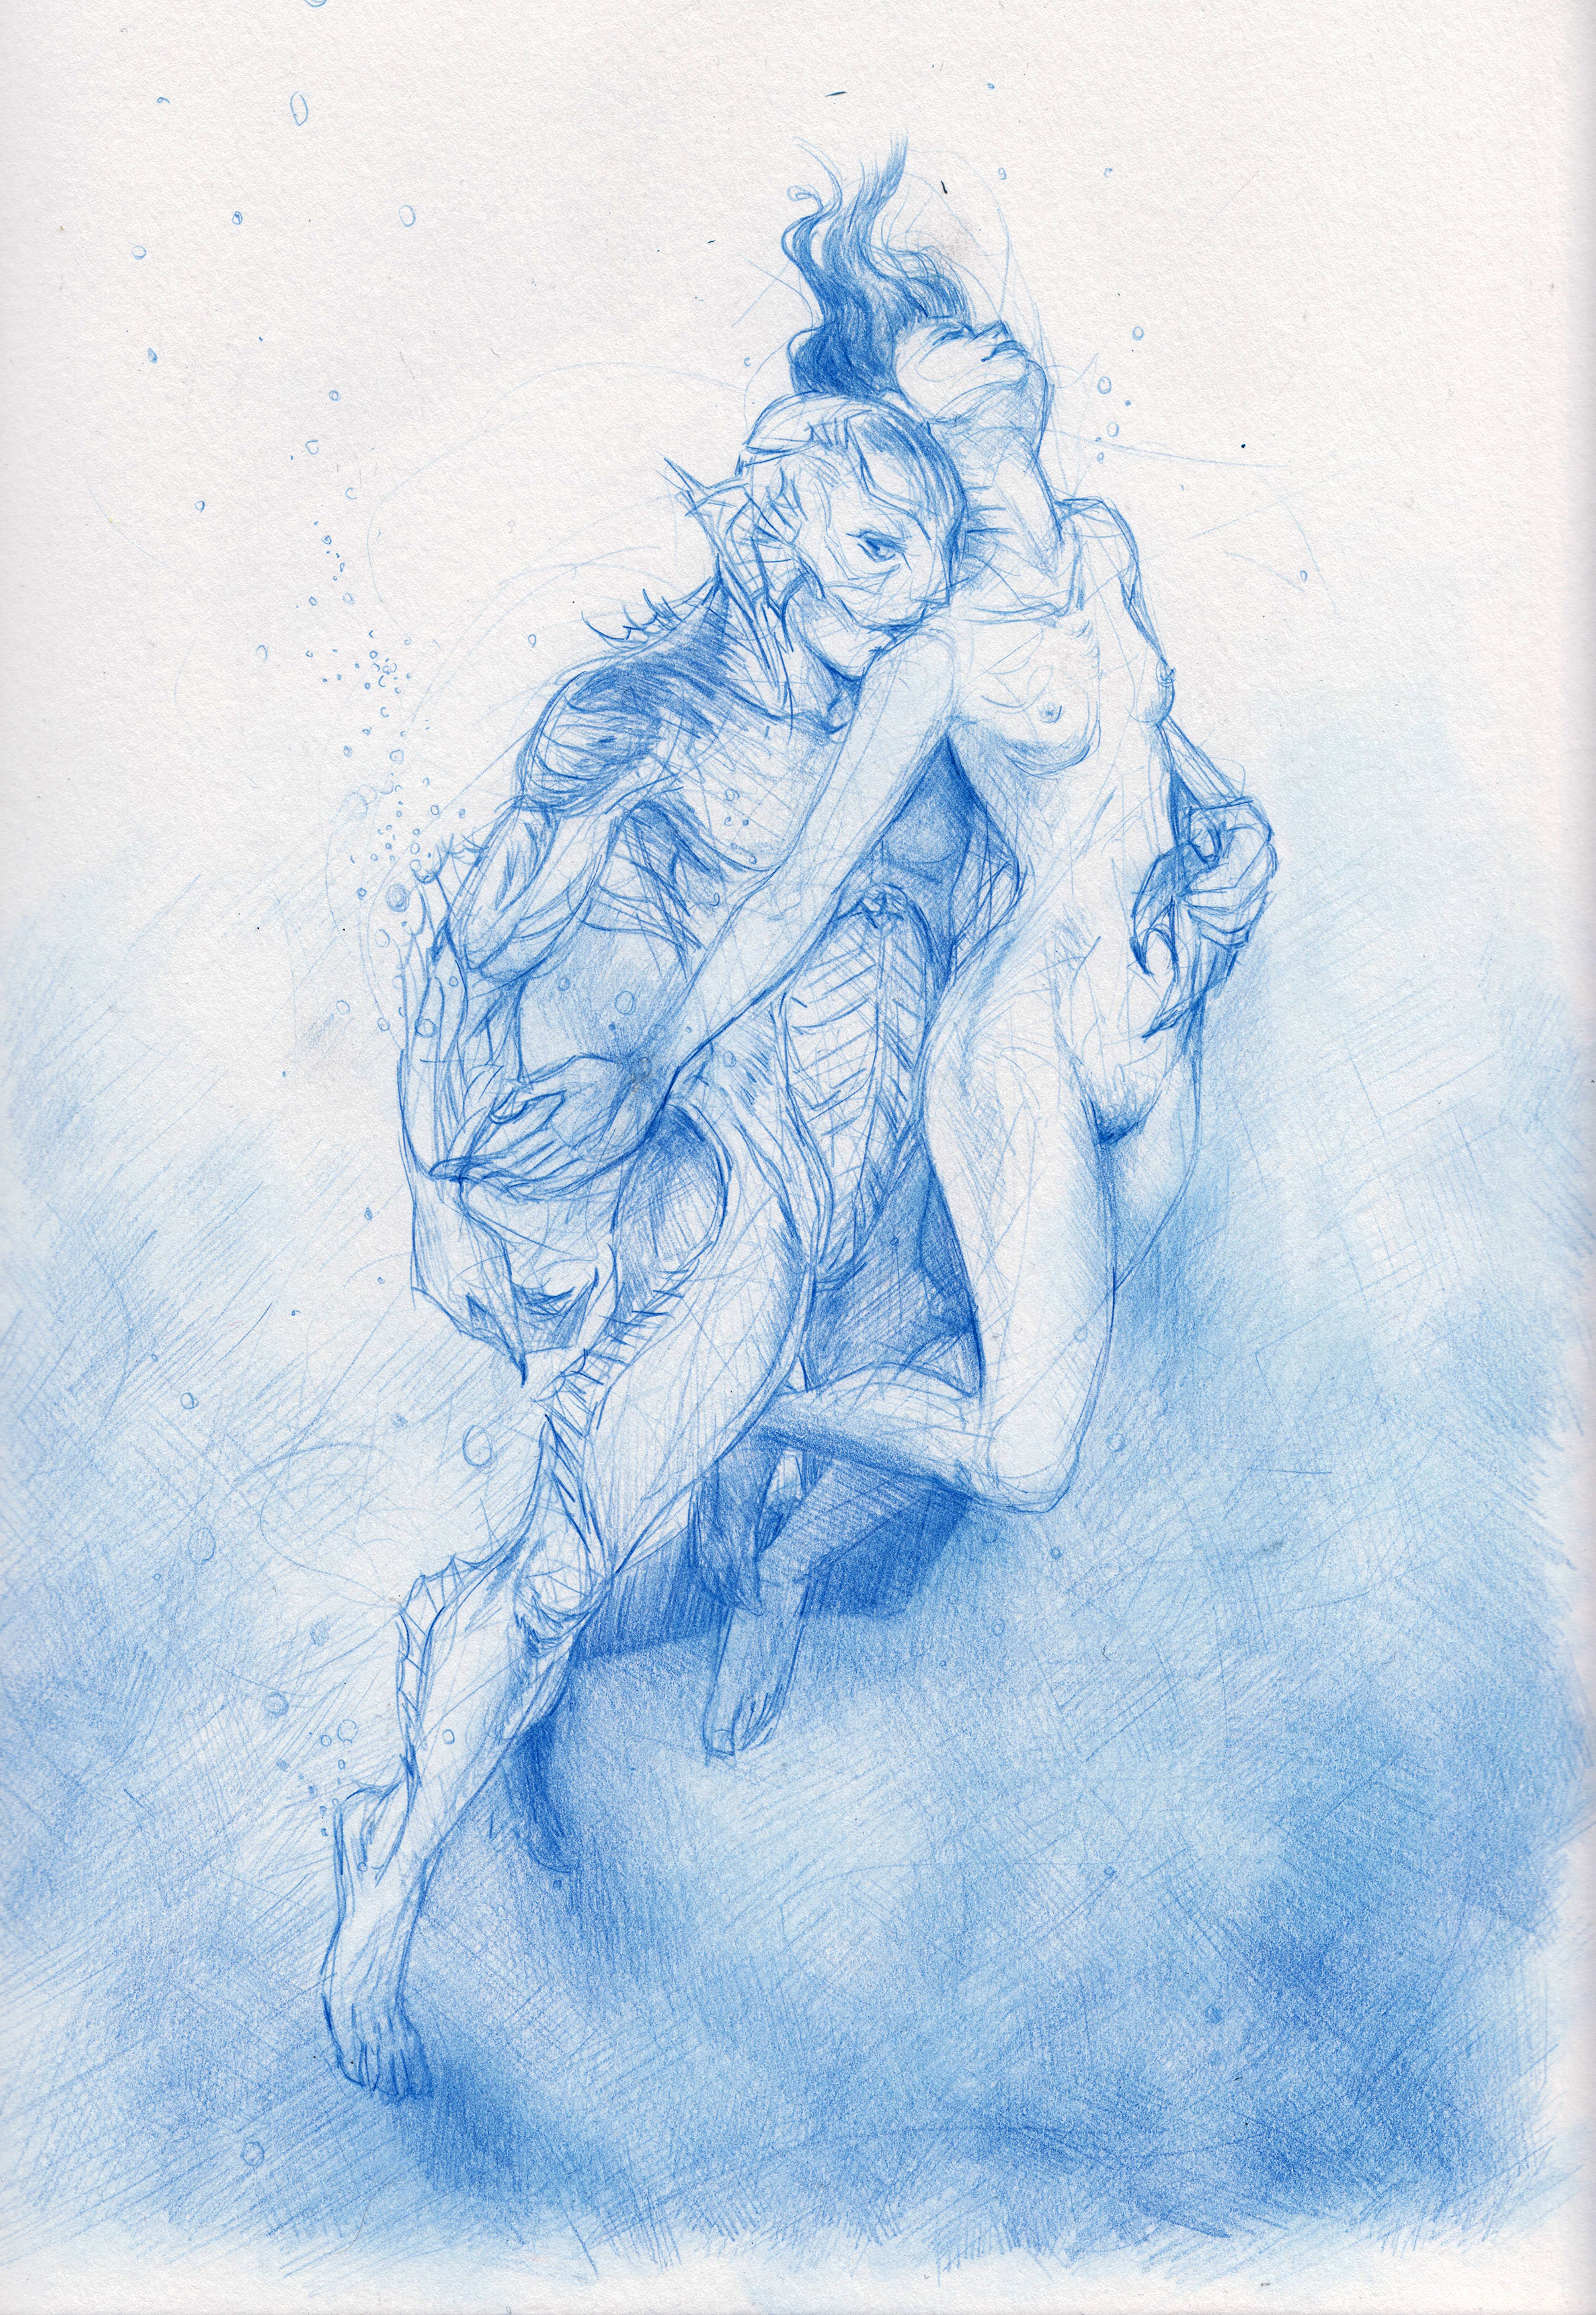 Underwater Lovers (Homage to Guillermo del Toro's 'The Shape of Water')